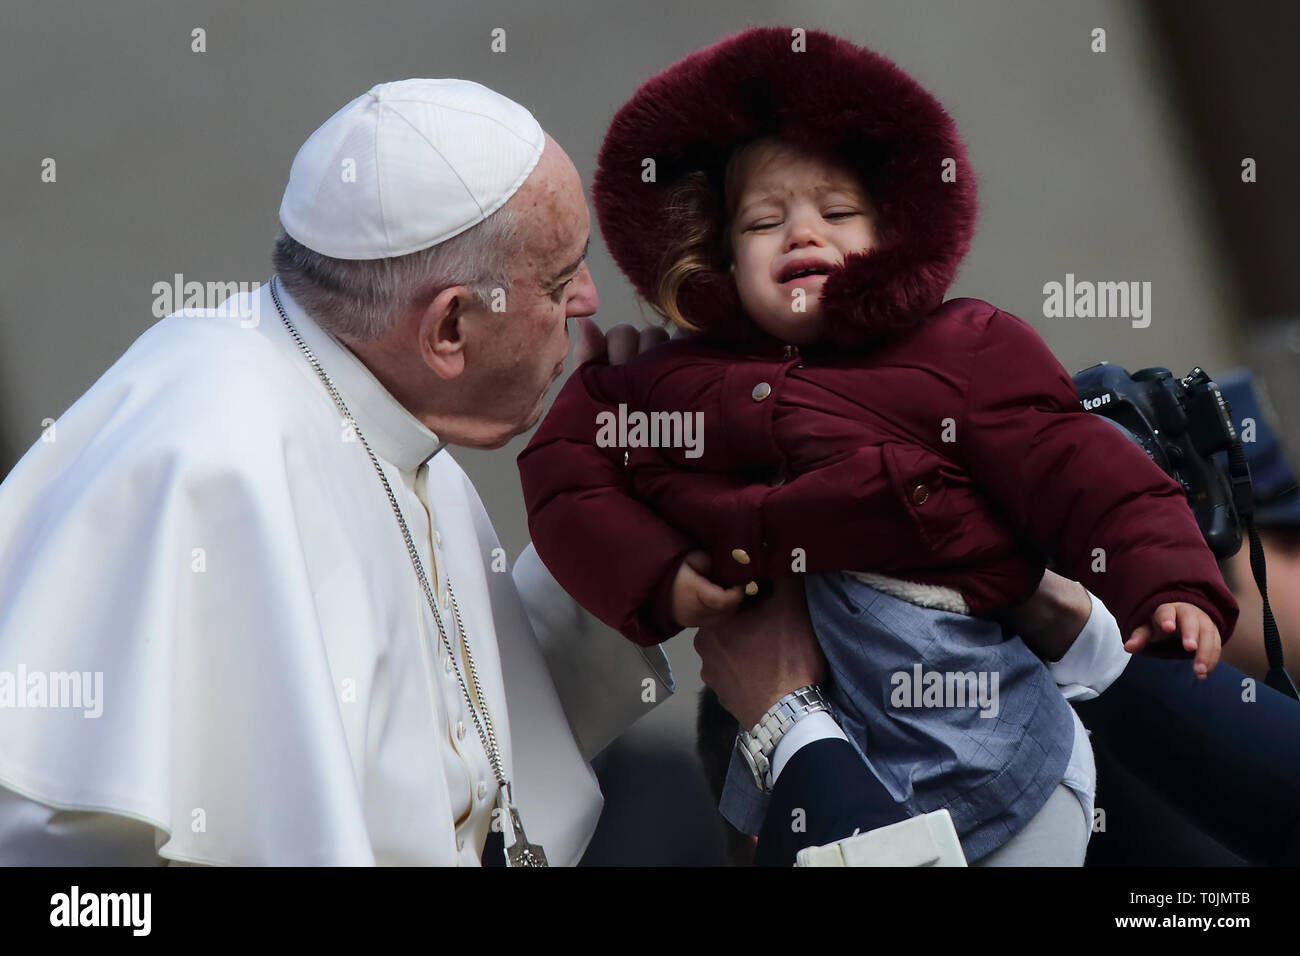 Vatican City, Vatican. 20th Mar 2019. POPE FRANCIS during the wednesday General Audience in St. Peter's Square at the Vatican. Credit Image: © Evandro Inetti via ZUMA Wire) Credit: Evandro Inetti/ZUMA Wire/Alamy Live News - Stock Image